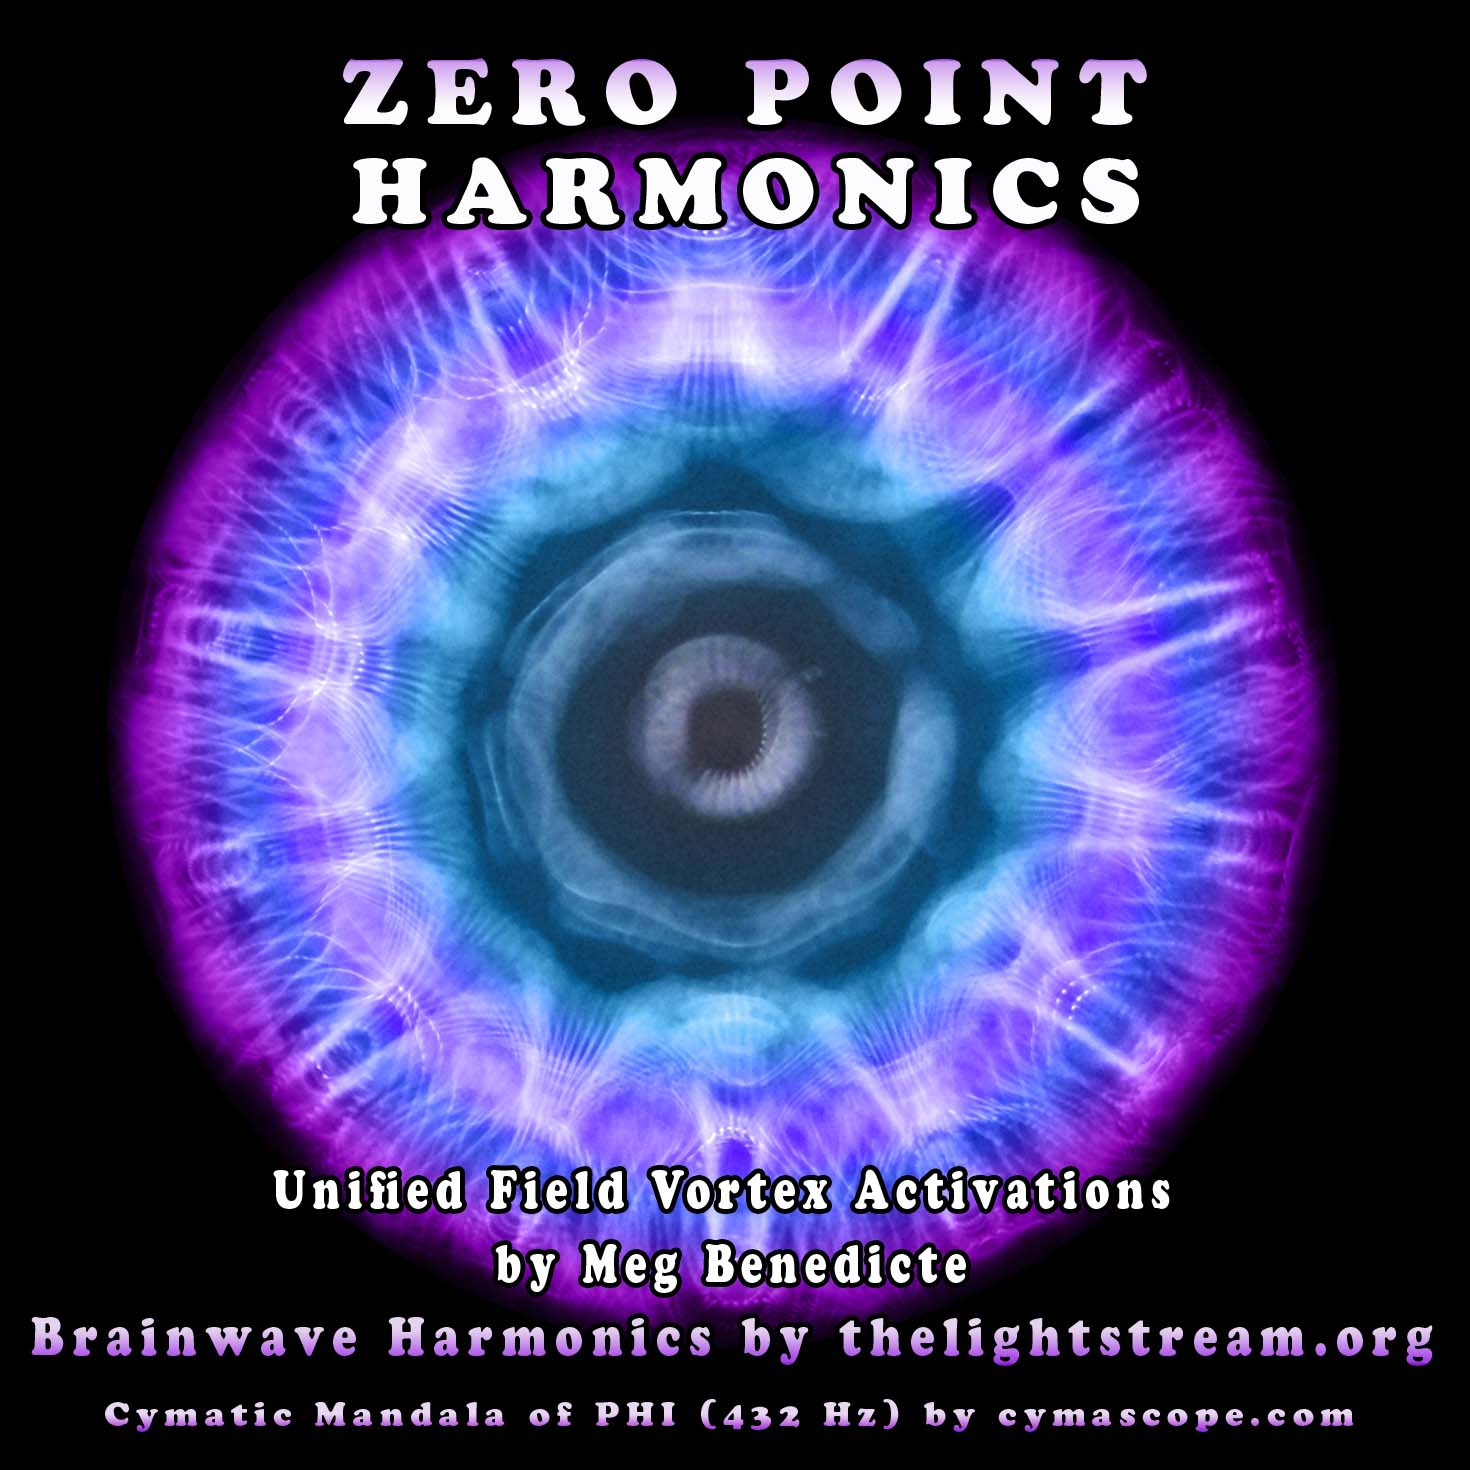 Zero Point Harmonics, my 1st collaboration